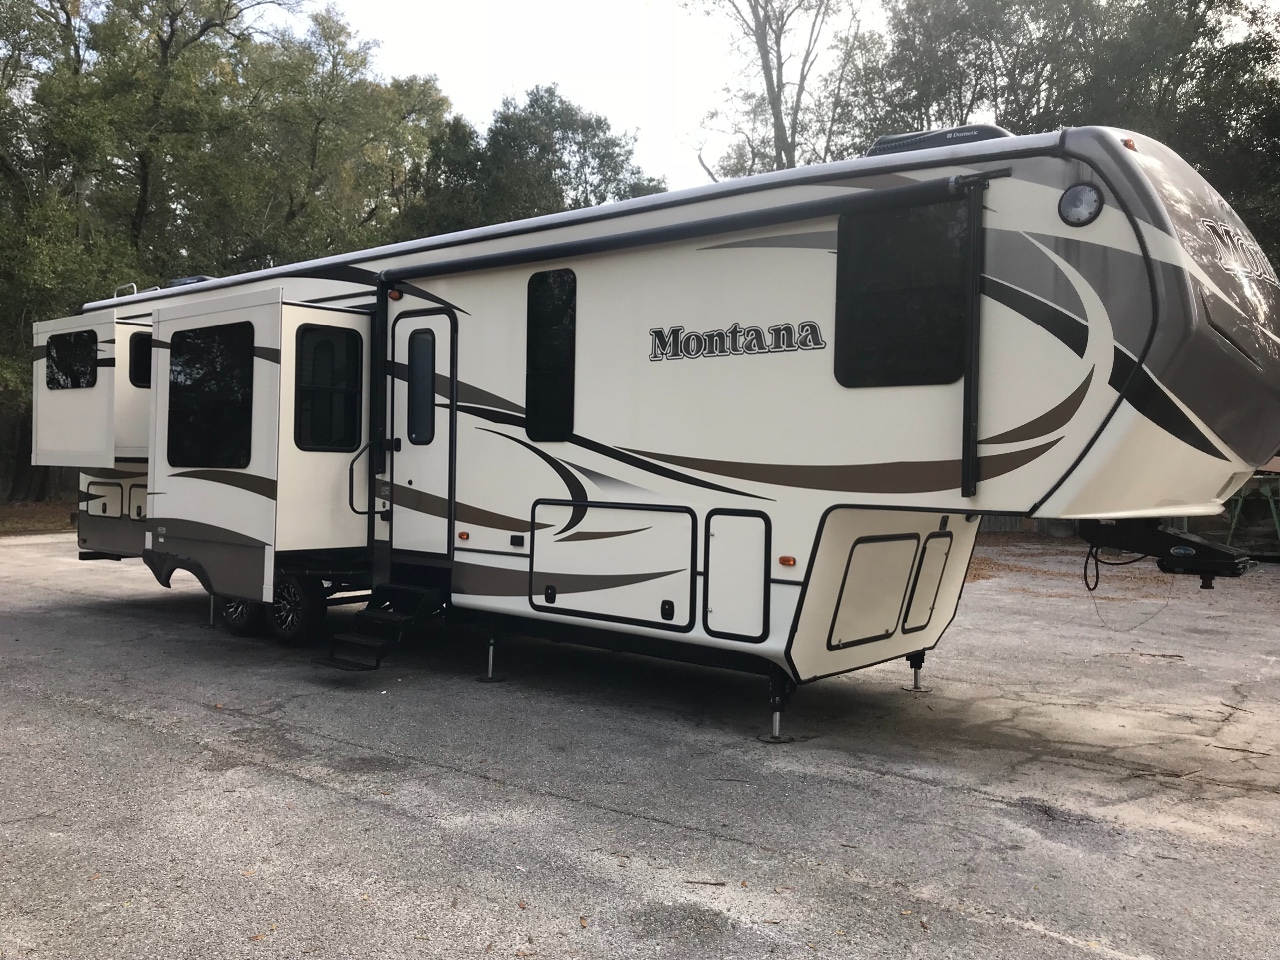 Sunline MONTANA RVs For Sale: 1,663 RVs - RV Trader on camper accessories, camper battery box, camper wiring cable, camper seats, camper door handle, camper mirrors, camper water pump, camper strut, camper taillight wiring, camper antenna, camper transformer, camper cover,